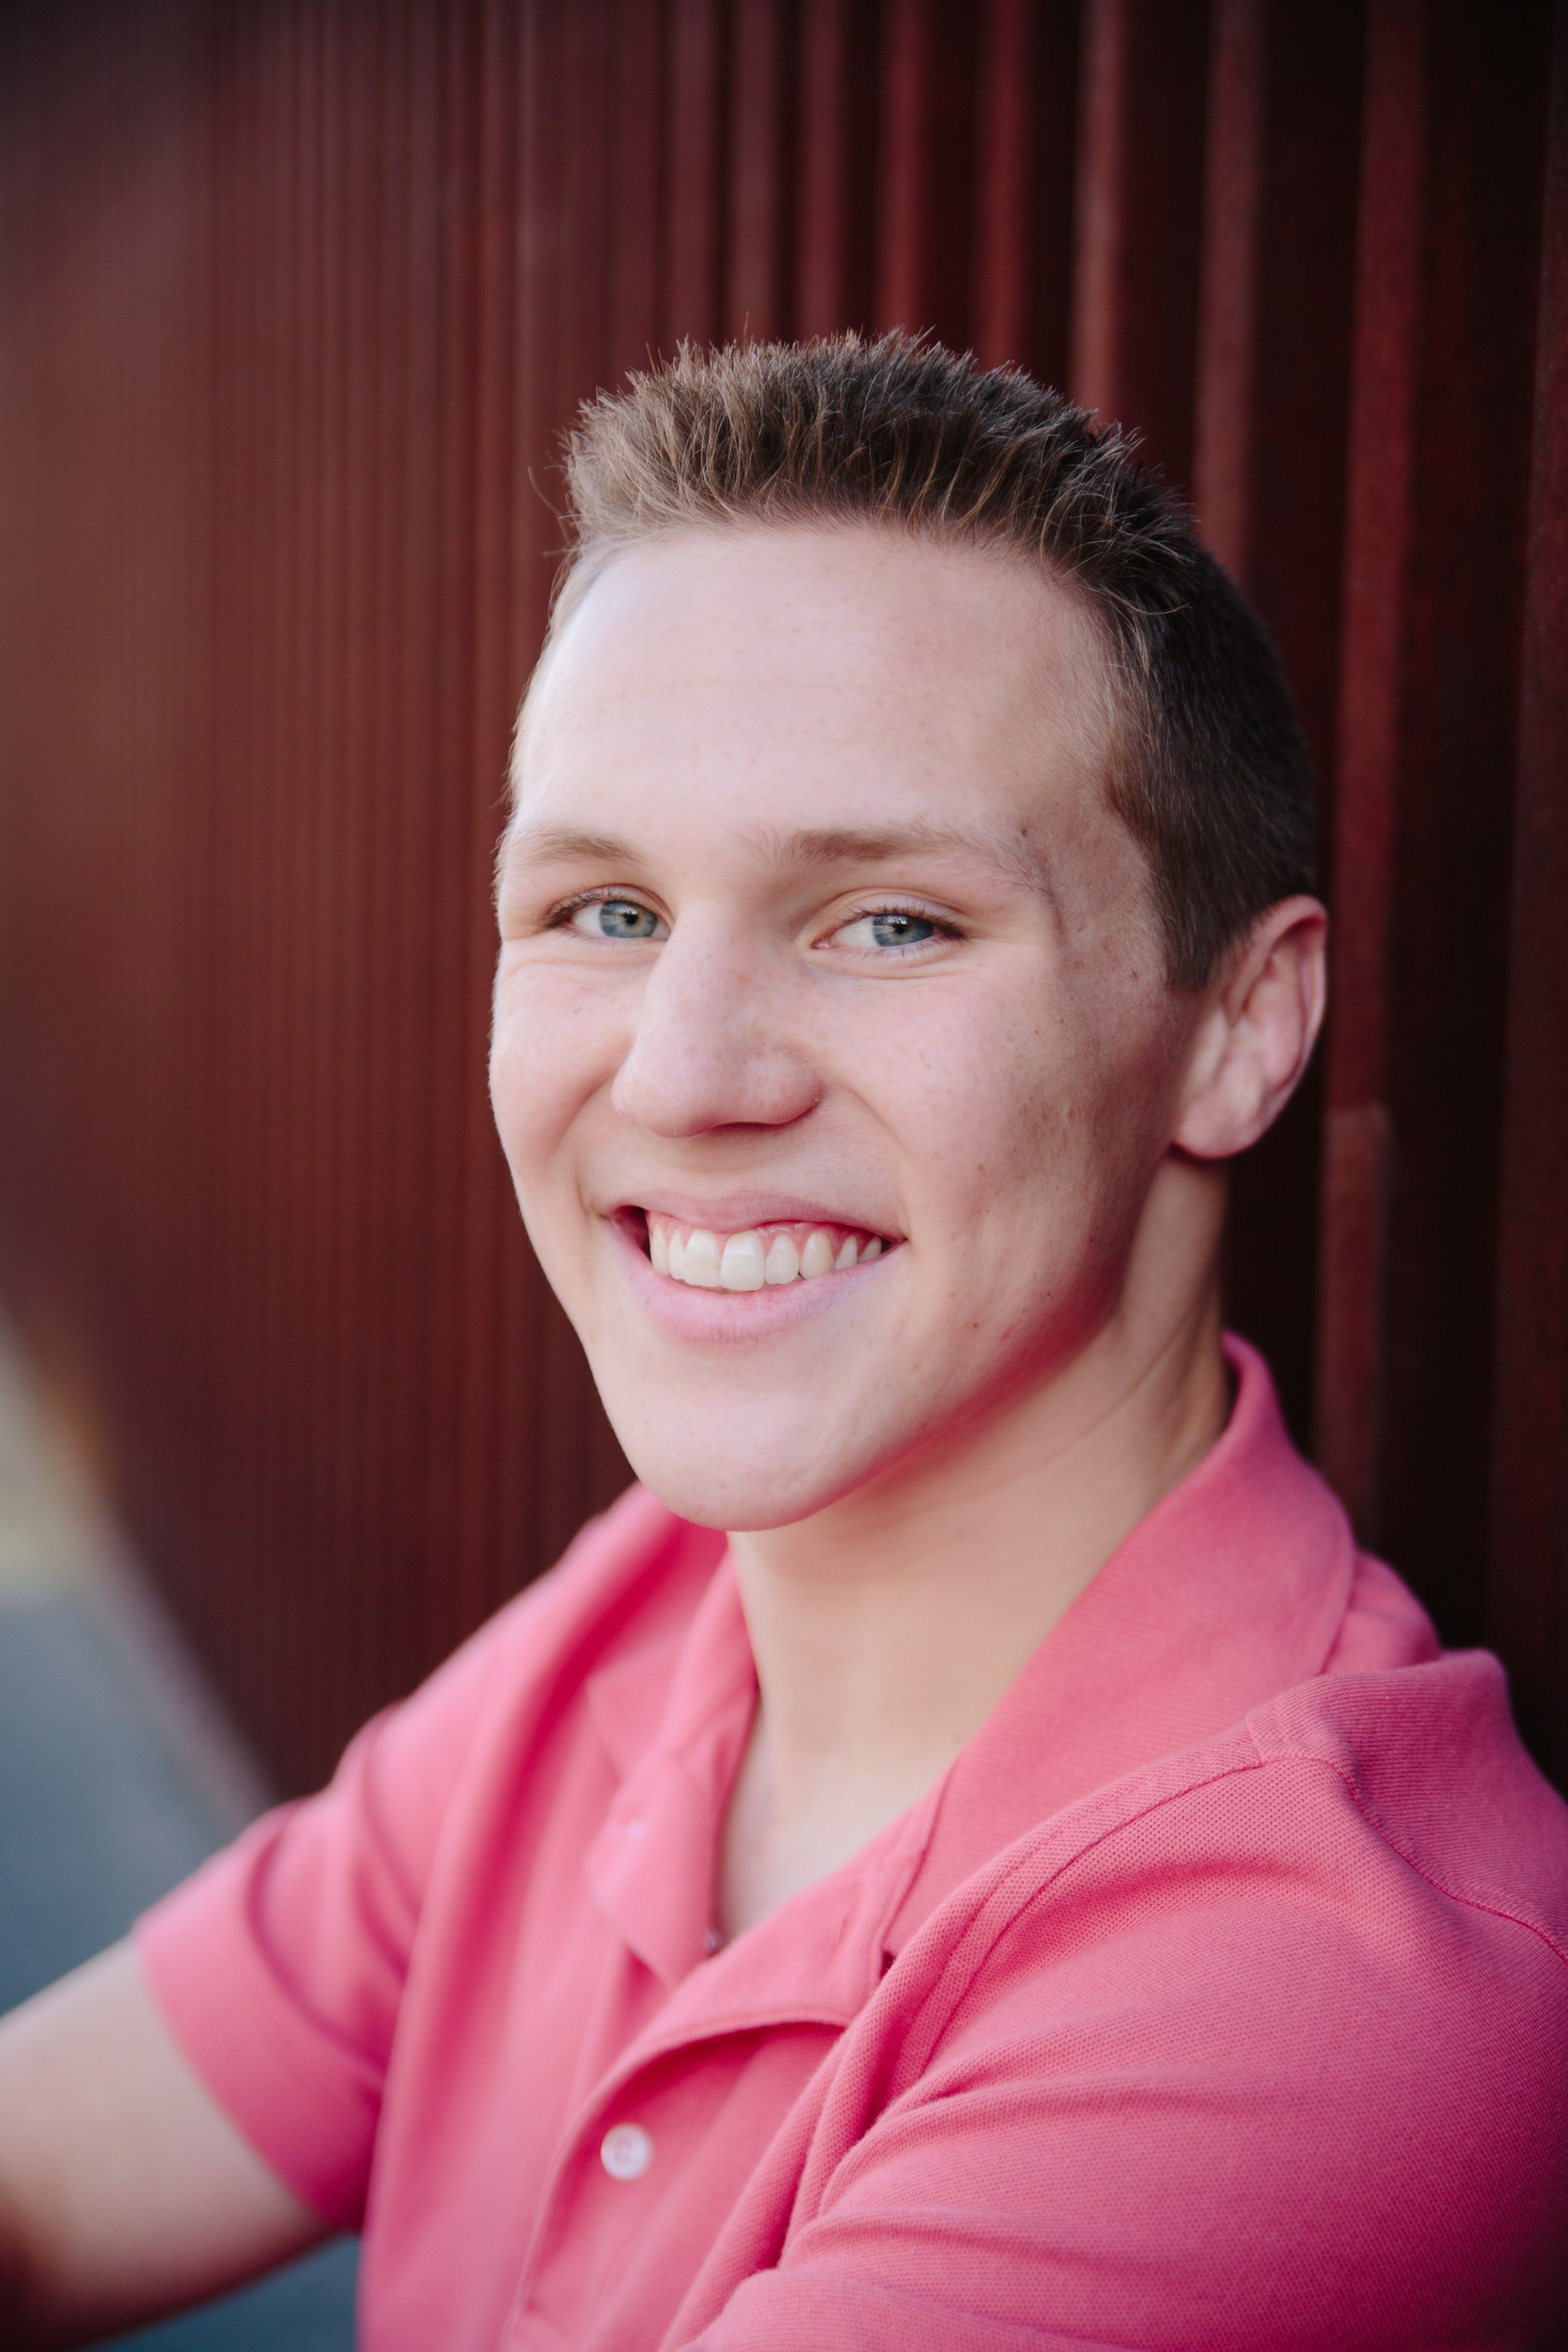 high school senior guy headshot in front of red rusty corrugated background